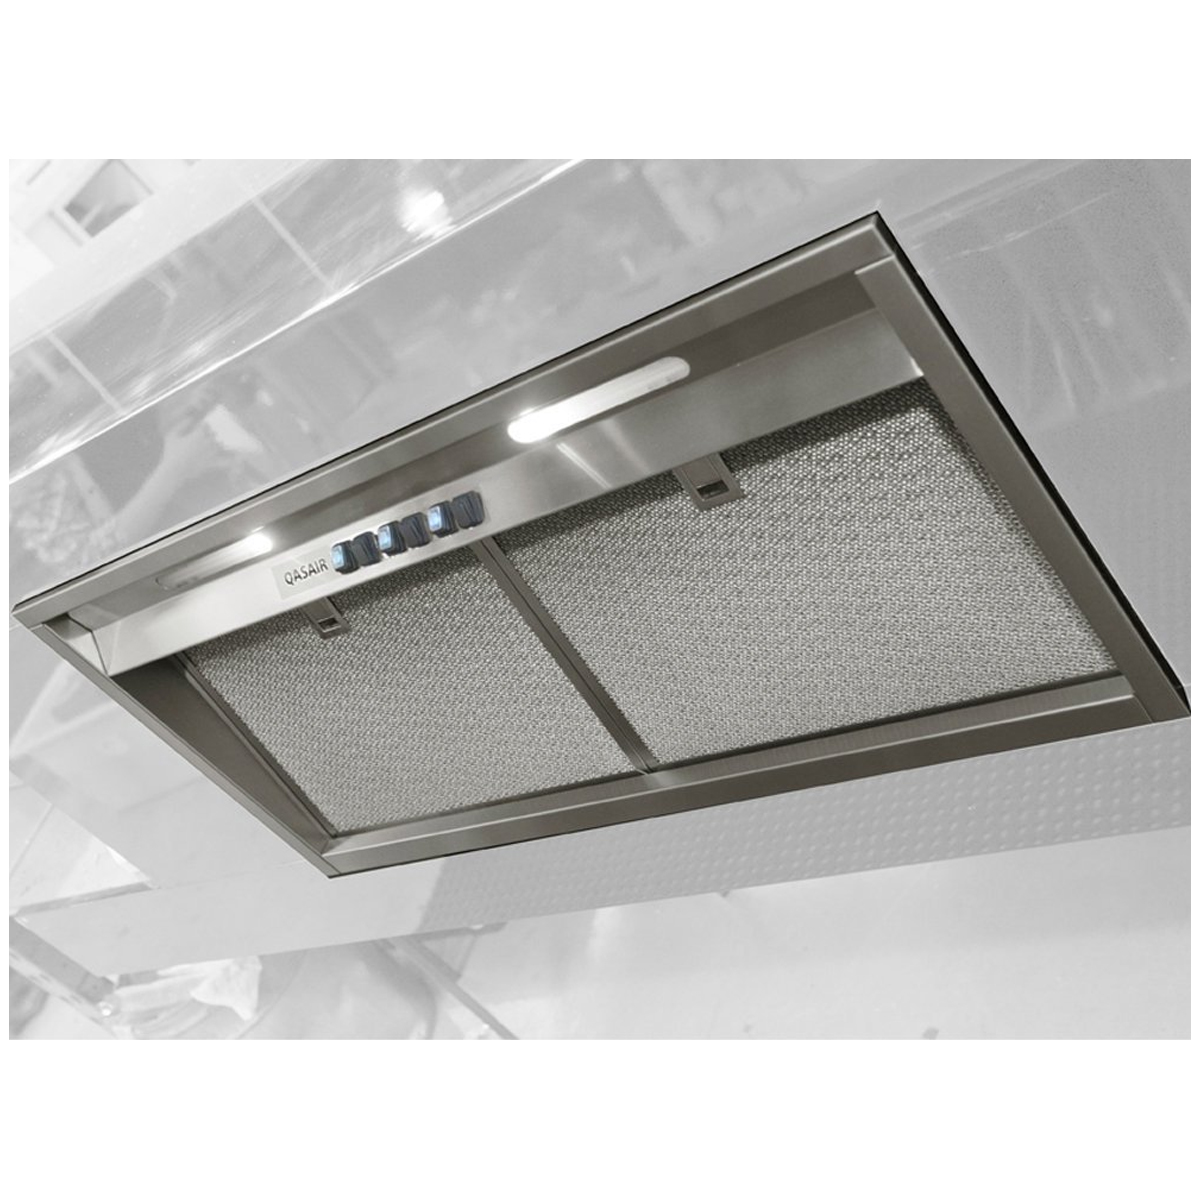 Undermount Rangehood Reviews Smeg Shr900x Under Cupboard Rangehood Home Clearance